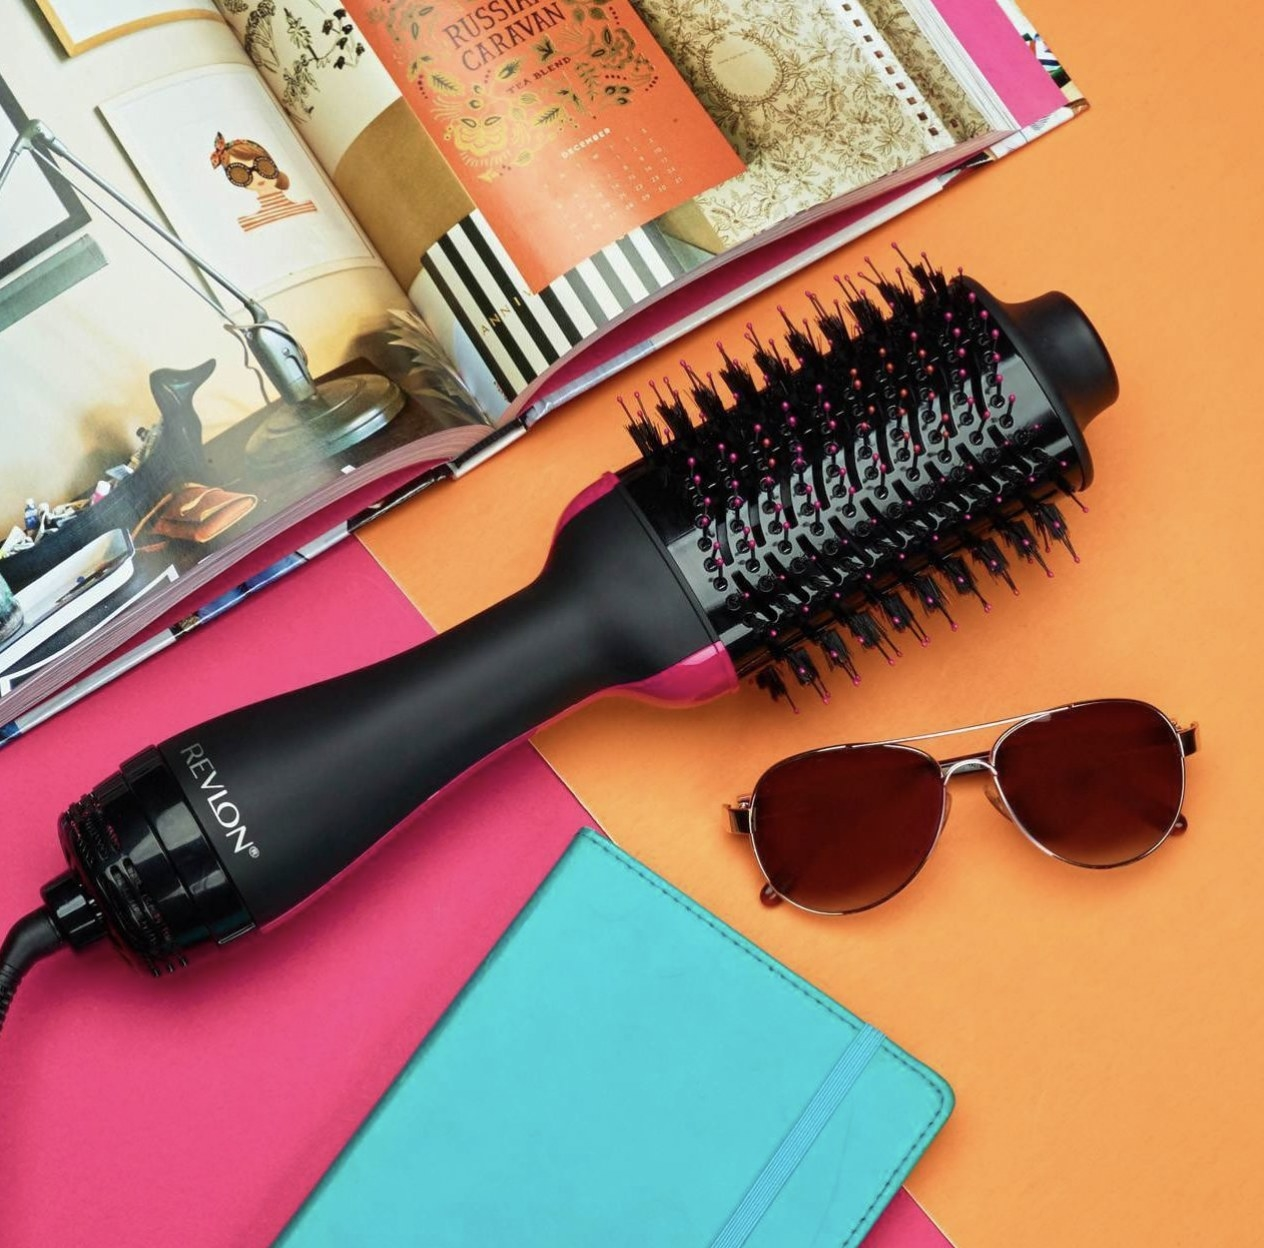 A heat-styling tool